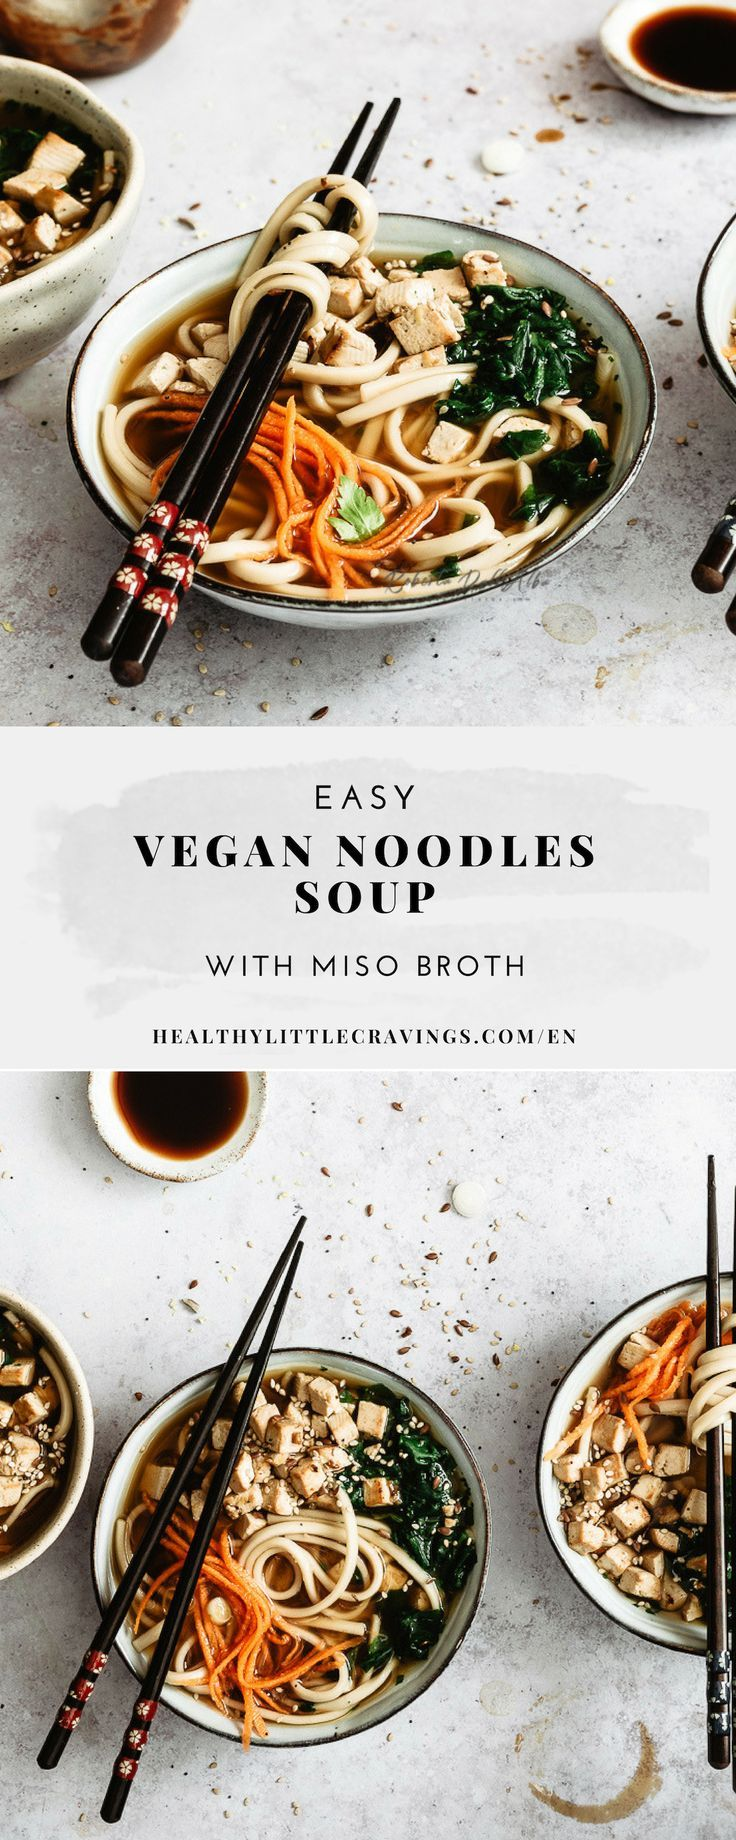 Vegan Miso Soup With Tofu And Udon Noodles Easy Recipe Udon Noodles Vegetarian Udon Soup Vegetarian Udon